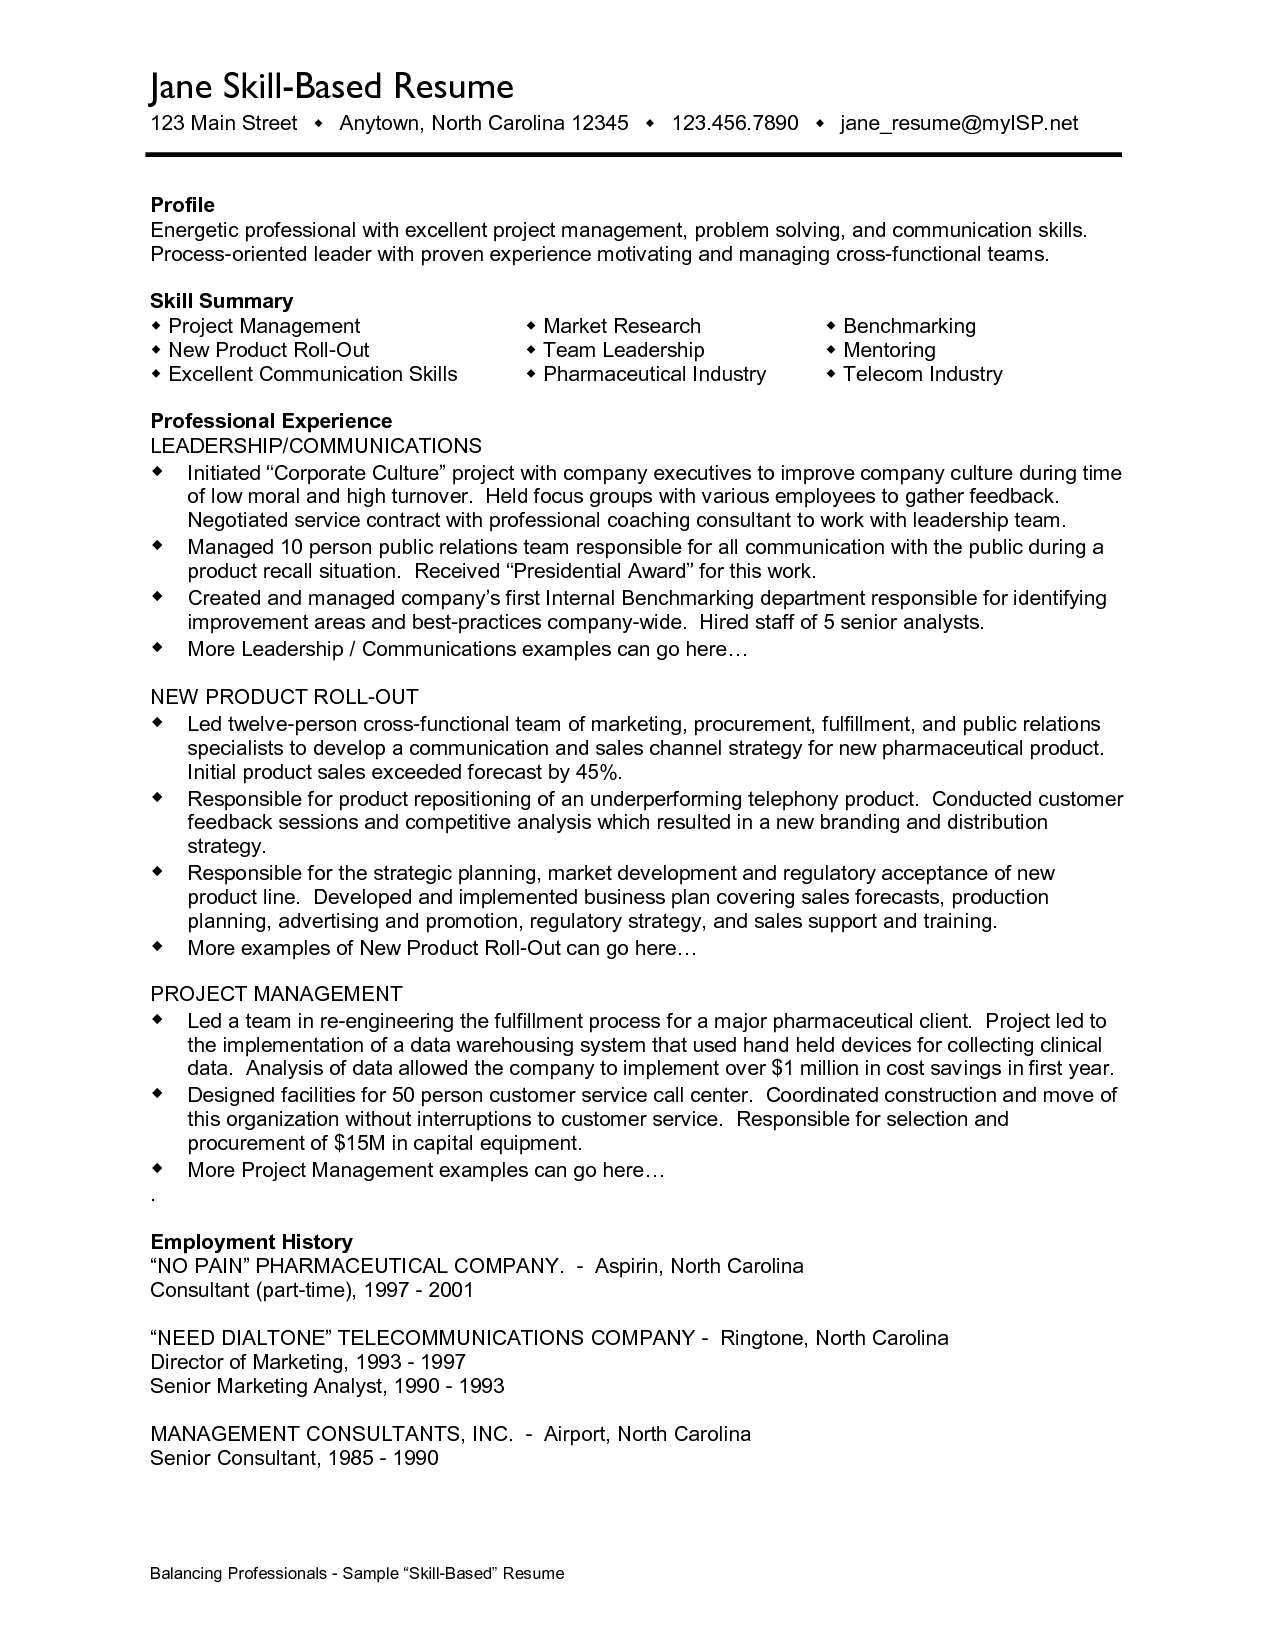 Skills Based Resume Template Job Resume Communication Skills  Httpwwwresumecareerjob